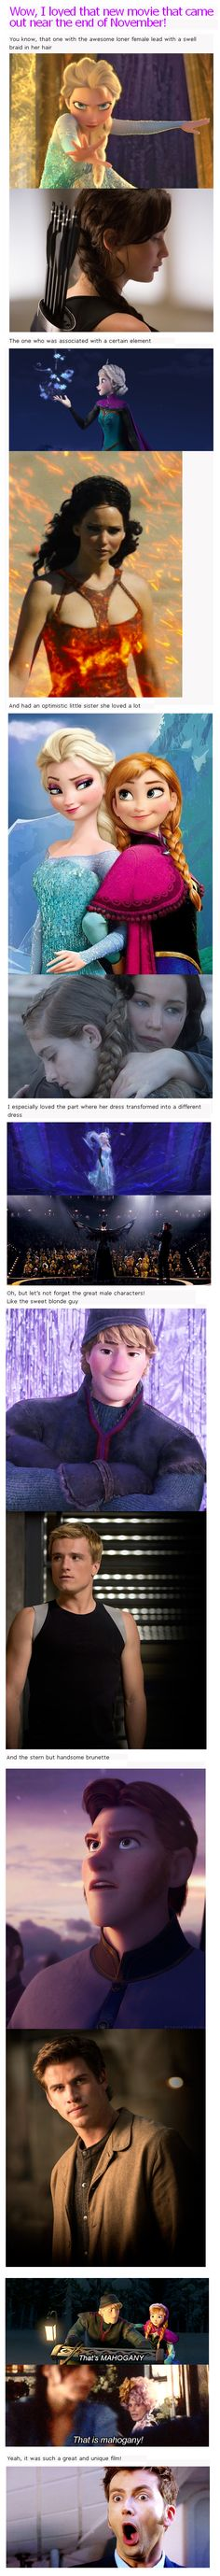 The whole time I watched Frozen, I thought it was creepy awesome how much they reminded me of each other